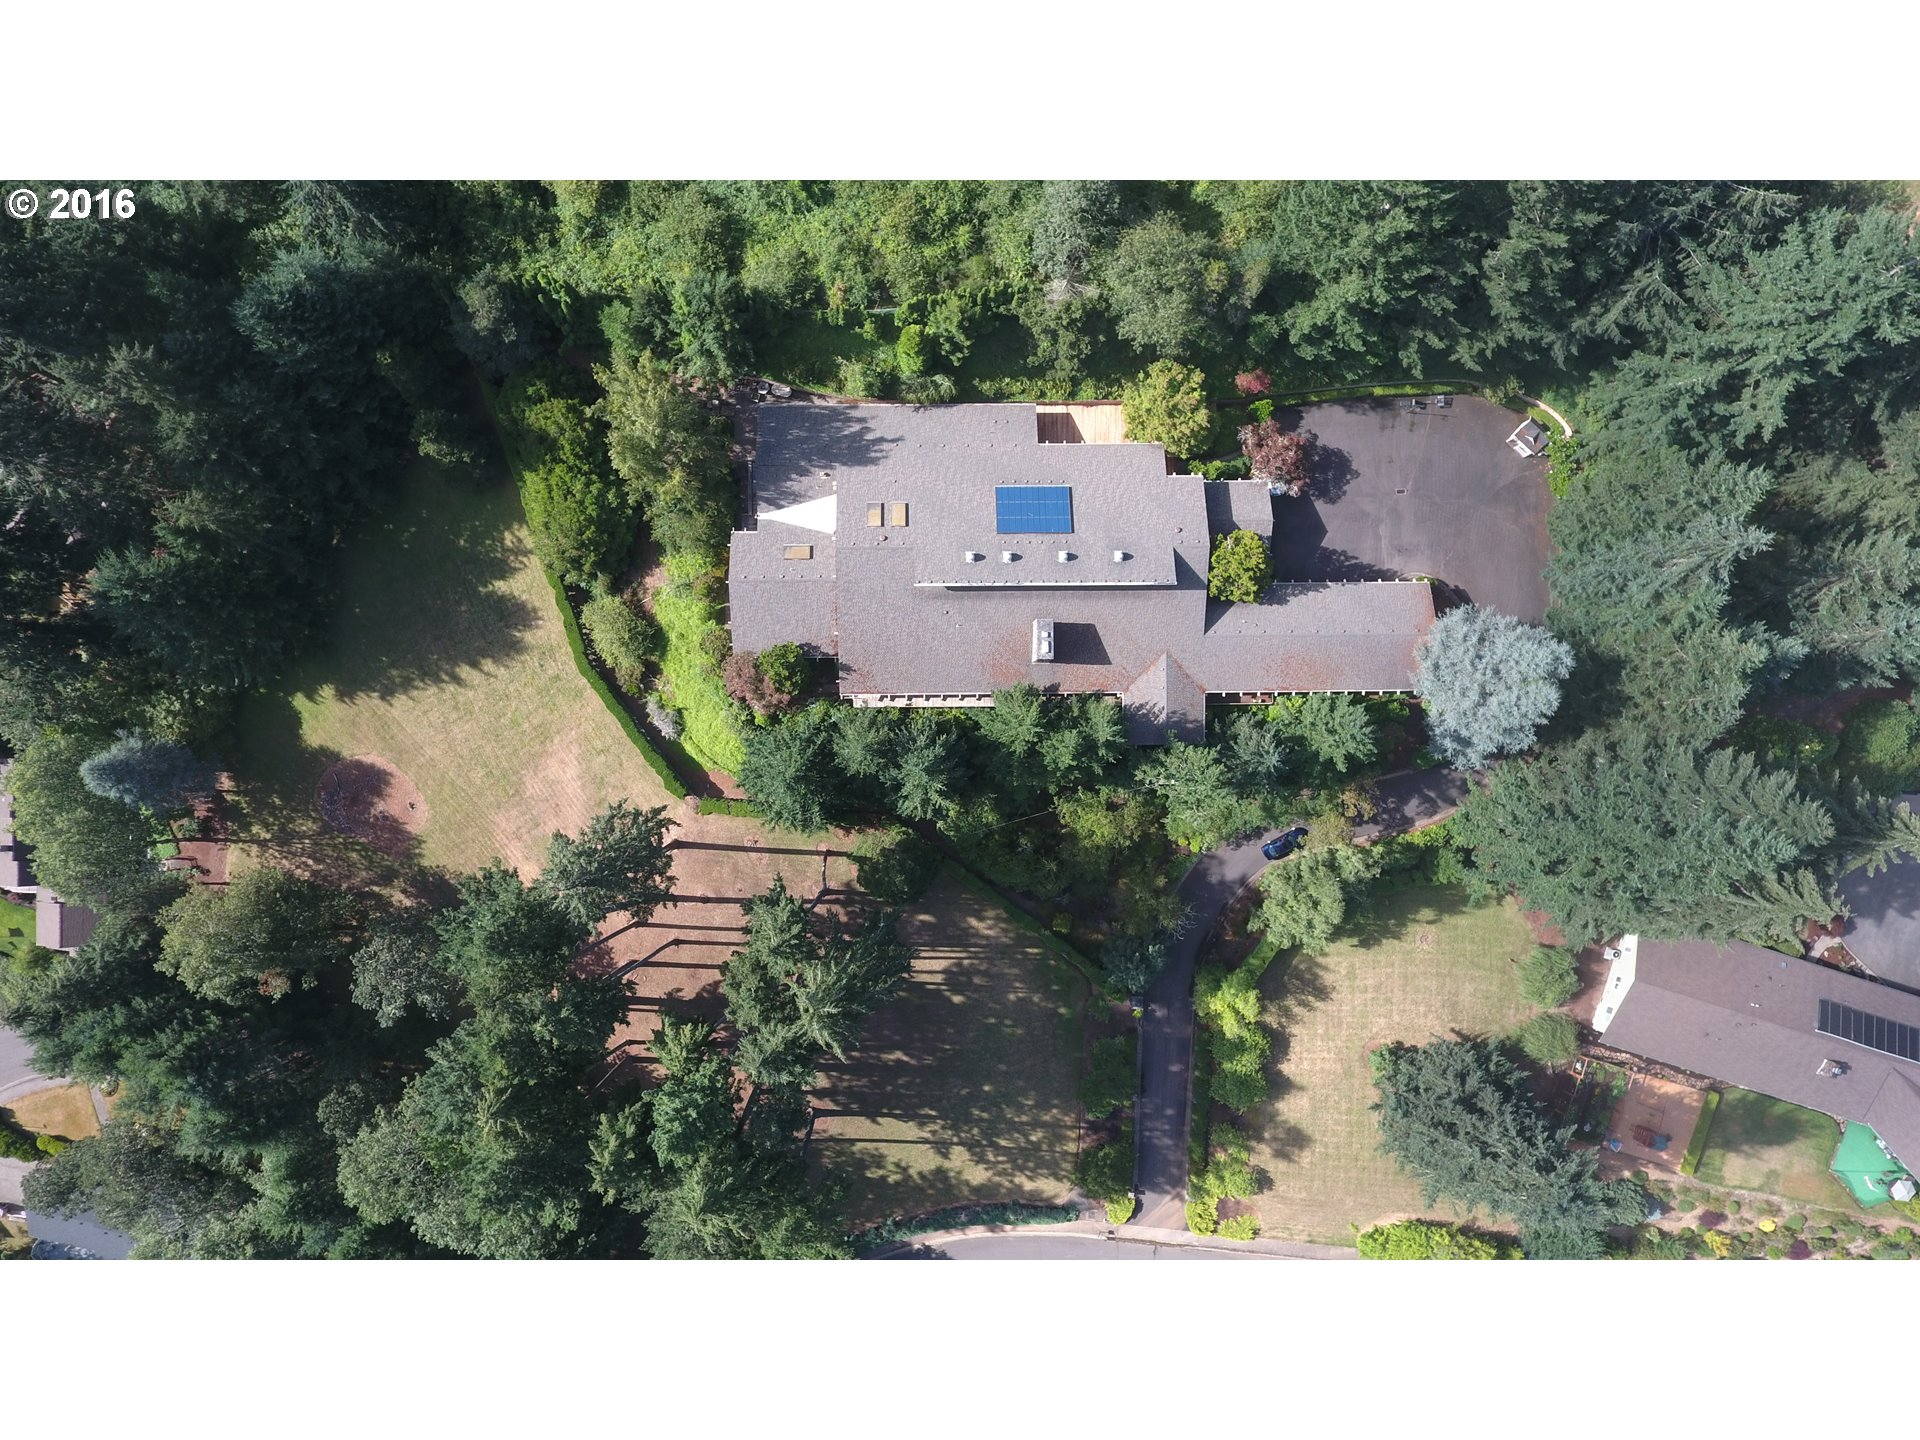 2442 W 29TH AVE, Eugene, OR 97405